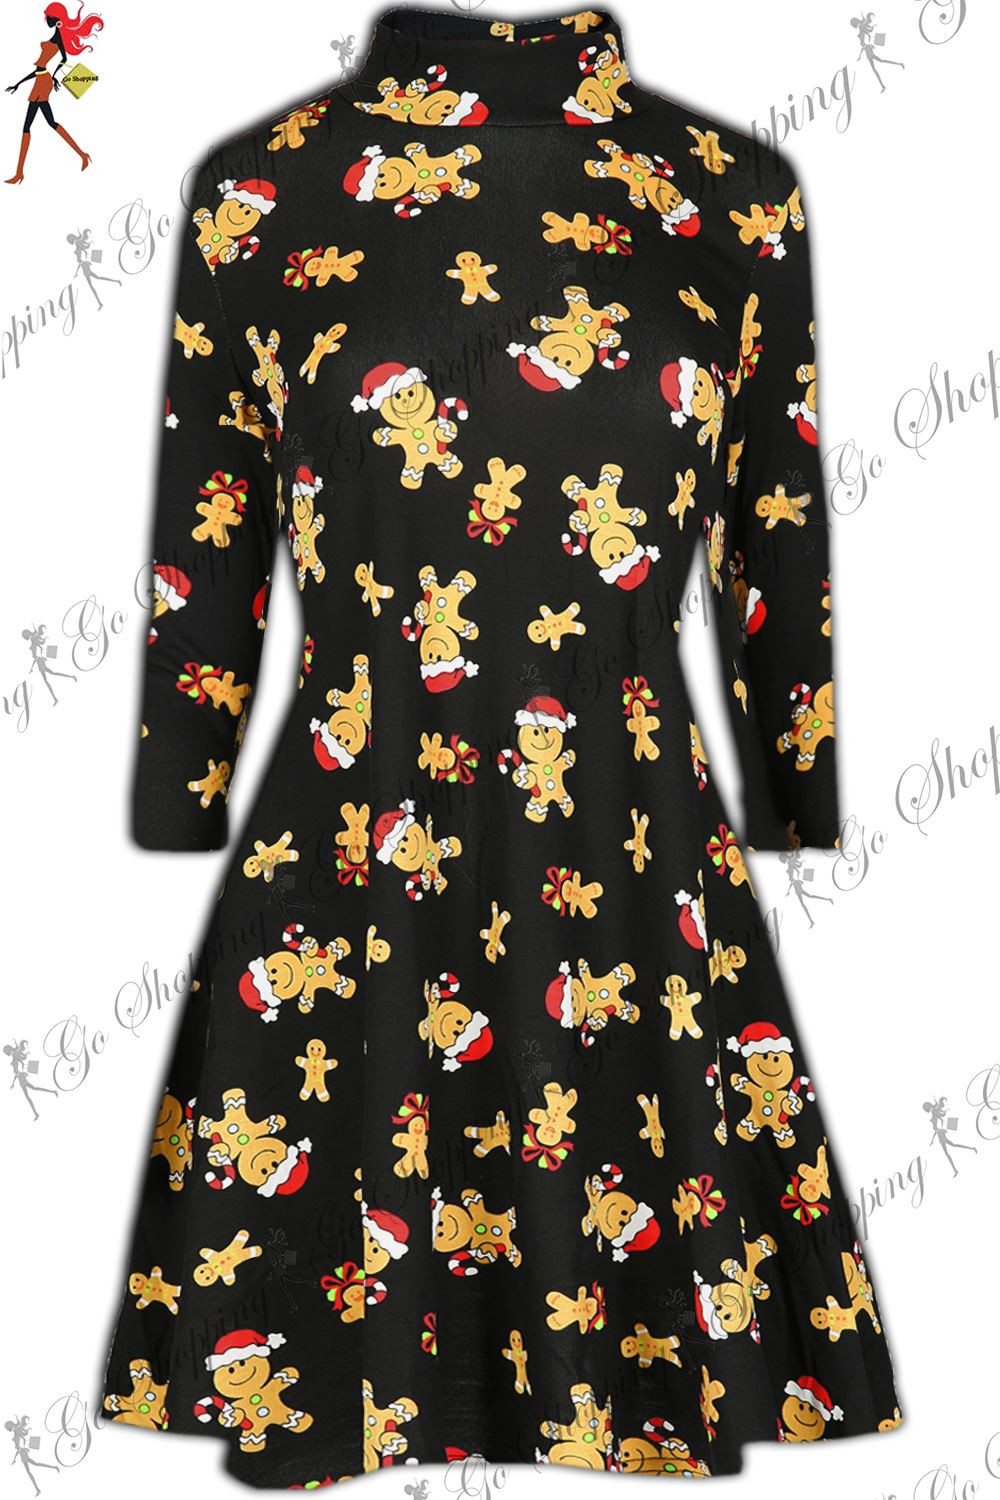 Christmas Swing Dress  Womens Novelty Christmas Swing Dress La s Xmas Santa